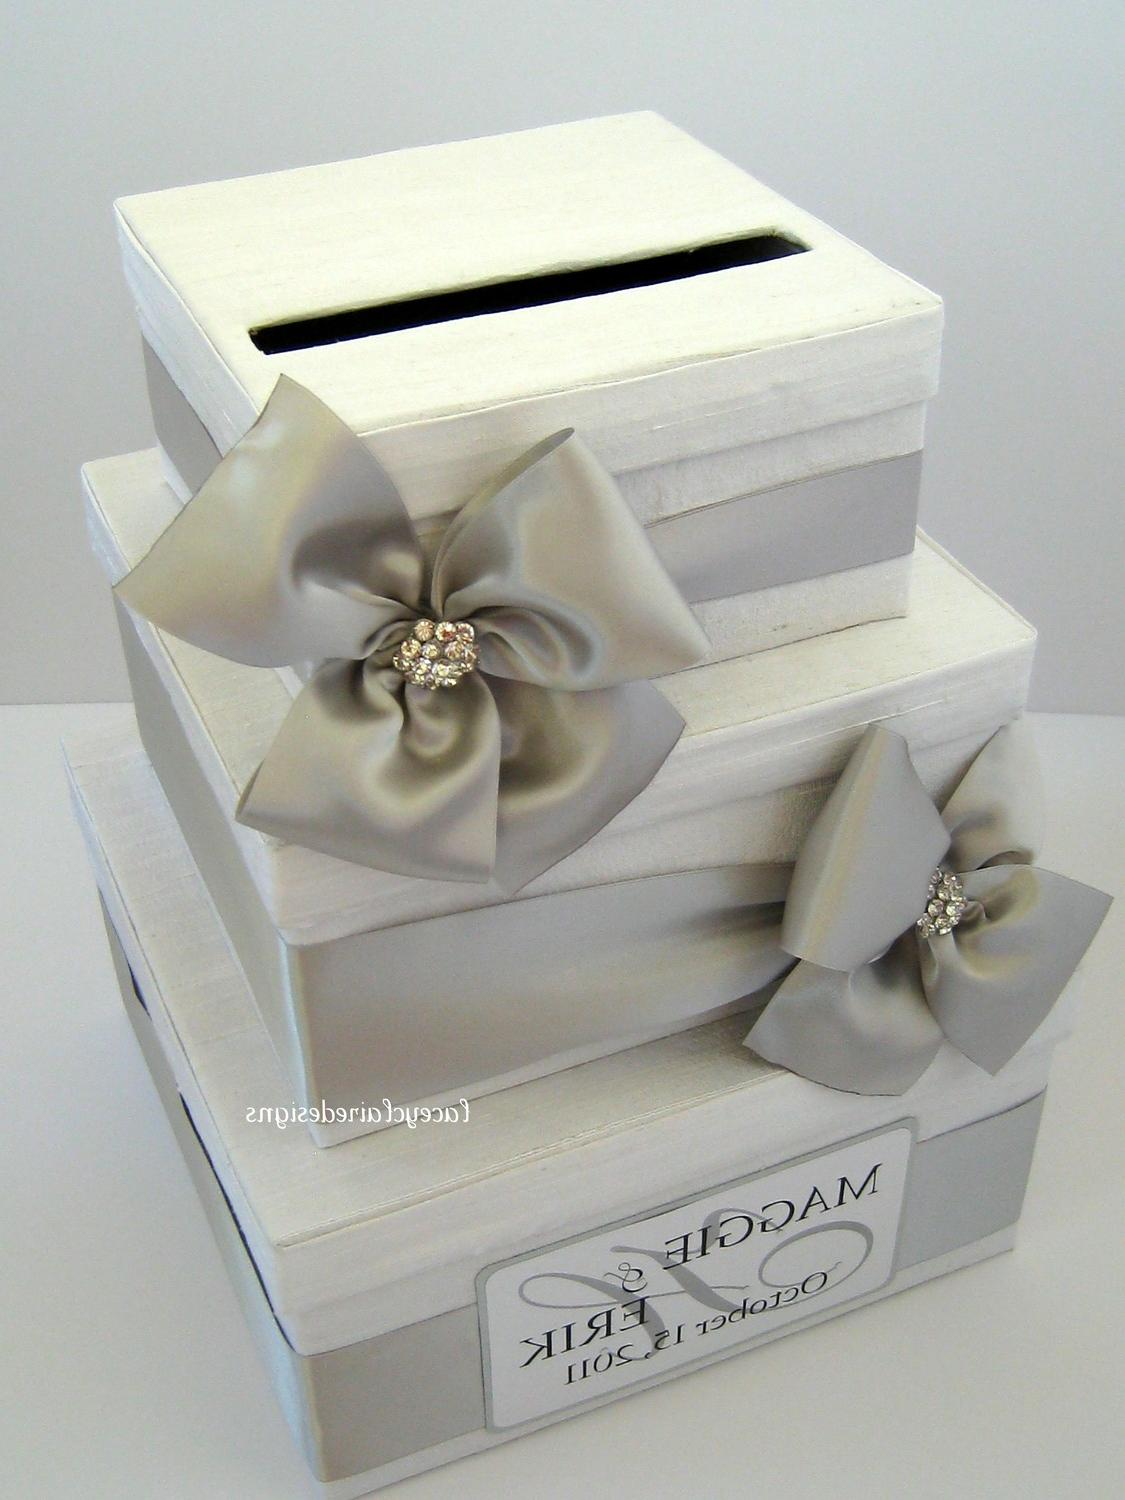 Wedding Gift Card Containers : Wedding Card Box, Money Card Box, Gift Card Box, Card Holder - Custom ...